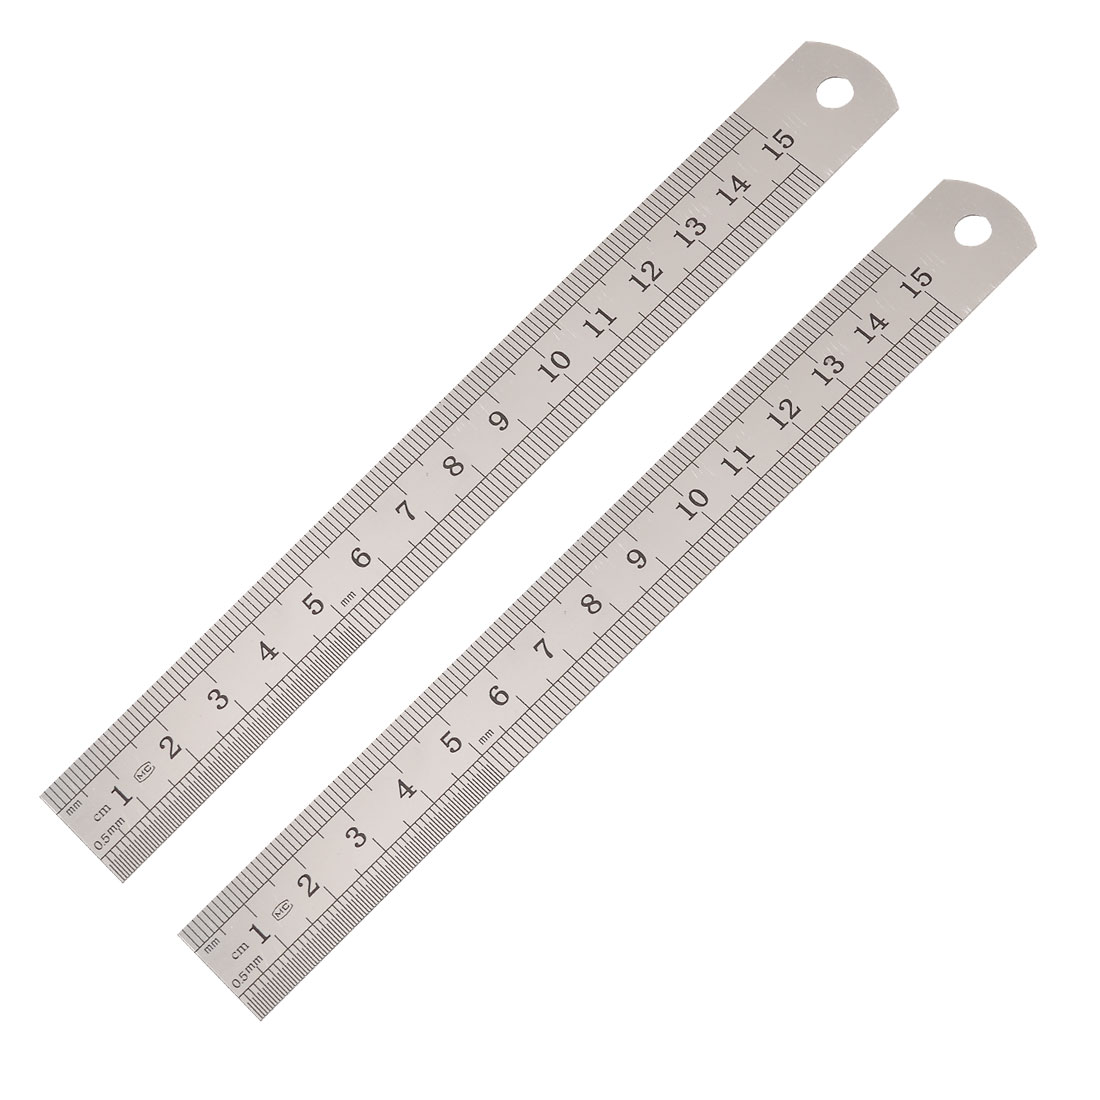 2 Pcs Metric 15cm Stainless Steel Straight Ruler Measuring Tool 6""